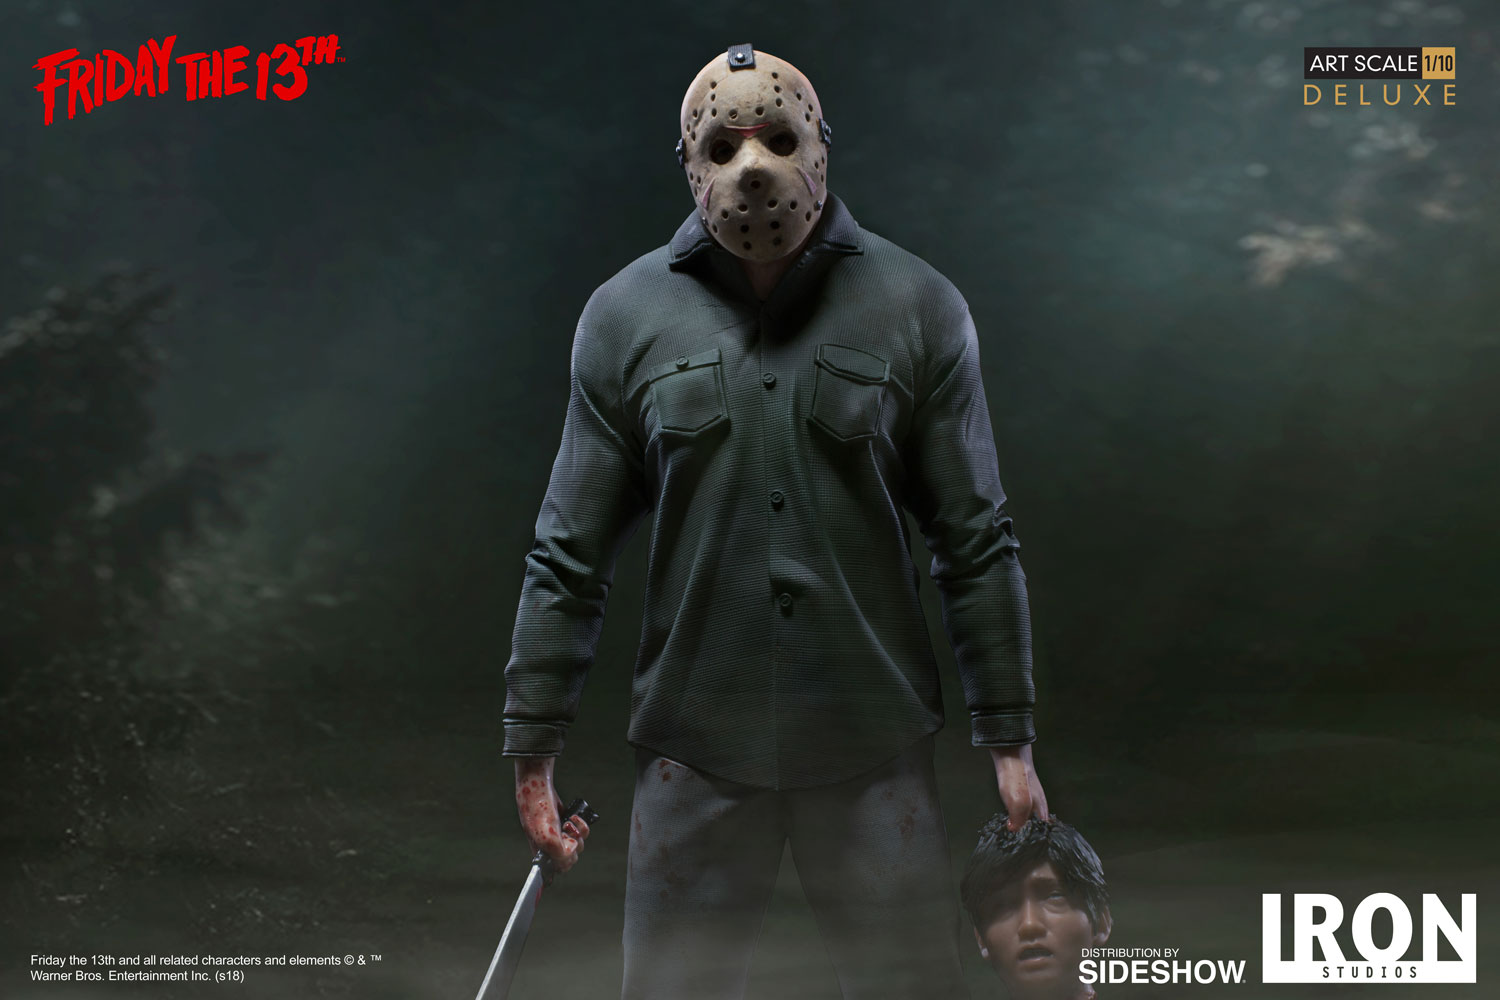 Win a Jason Deluxe 1:10 Scale Statue by Iron Studios Giveaway Image